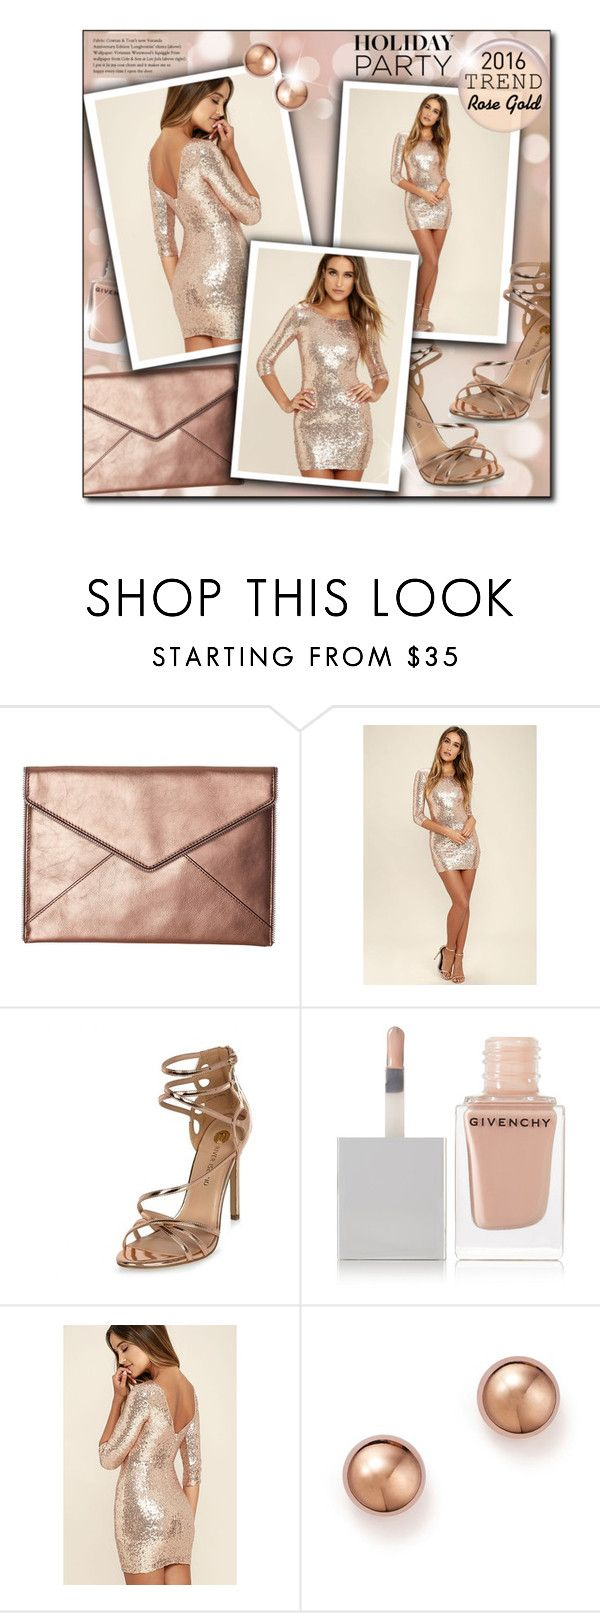 """""""#585 - Best Trend 2016: Rose Gold/Holiday Party Dress"""" by lilmissmegan ❤ liked on Polyvore featuring Rebecca Minkoff, LULUS, River Island, Givenchy and Bloomingdale's"""